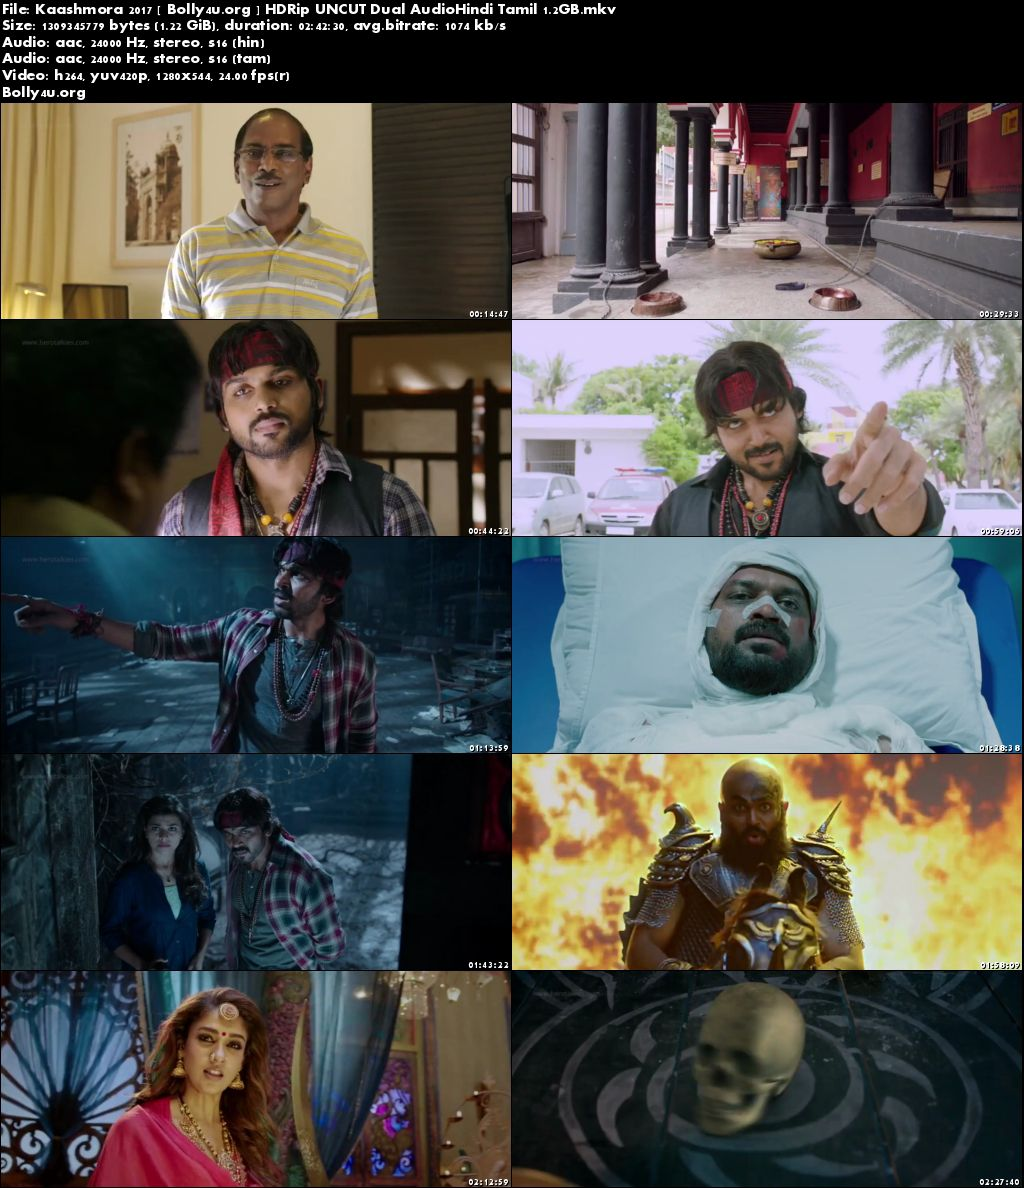 Kaashmora 2017 HDRip UNCUT Hindi Dual Audio 720p Download